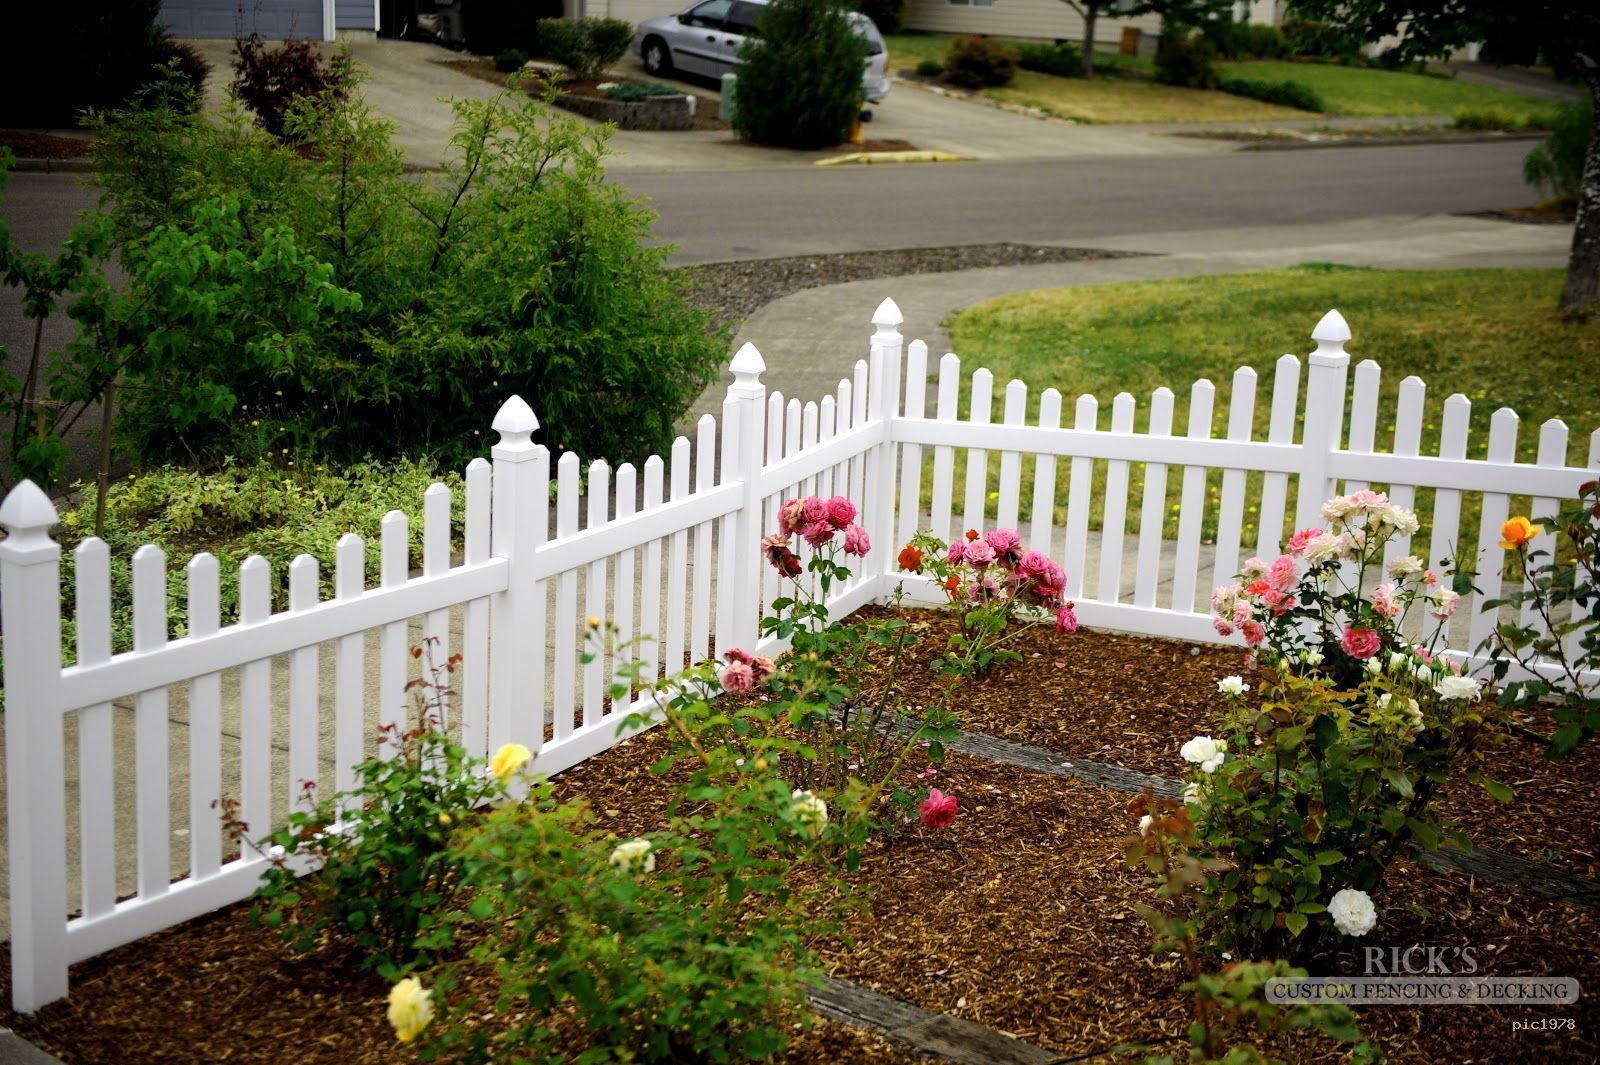 vinyl picket fence front yard. Vinyl Picket Fencing Is Like A Frame Around Your Yard. An Attractive Enhances The Beauty Of Artwork! Fence Front Yard